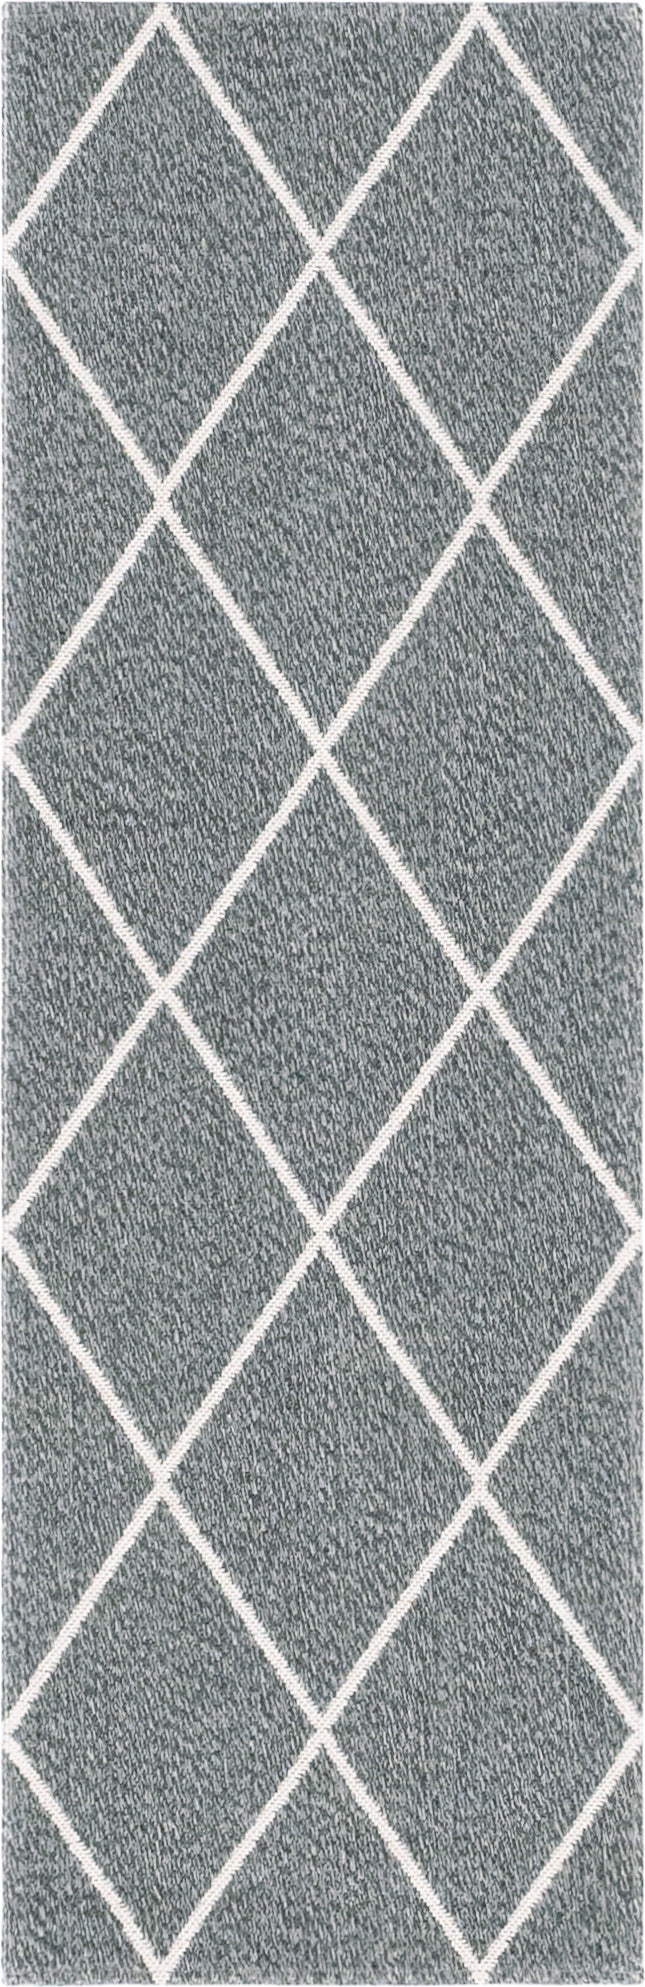 Diamond Decatur Rug